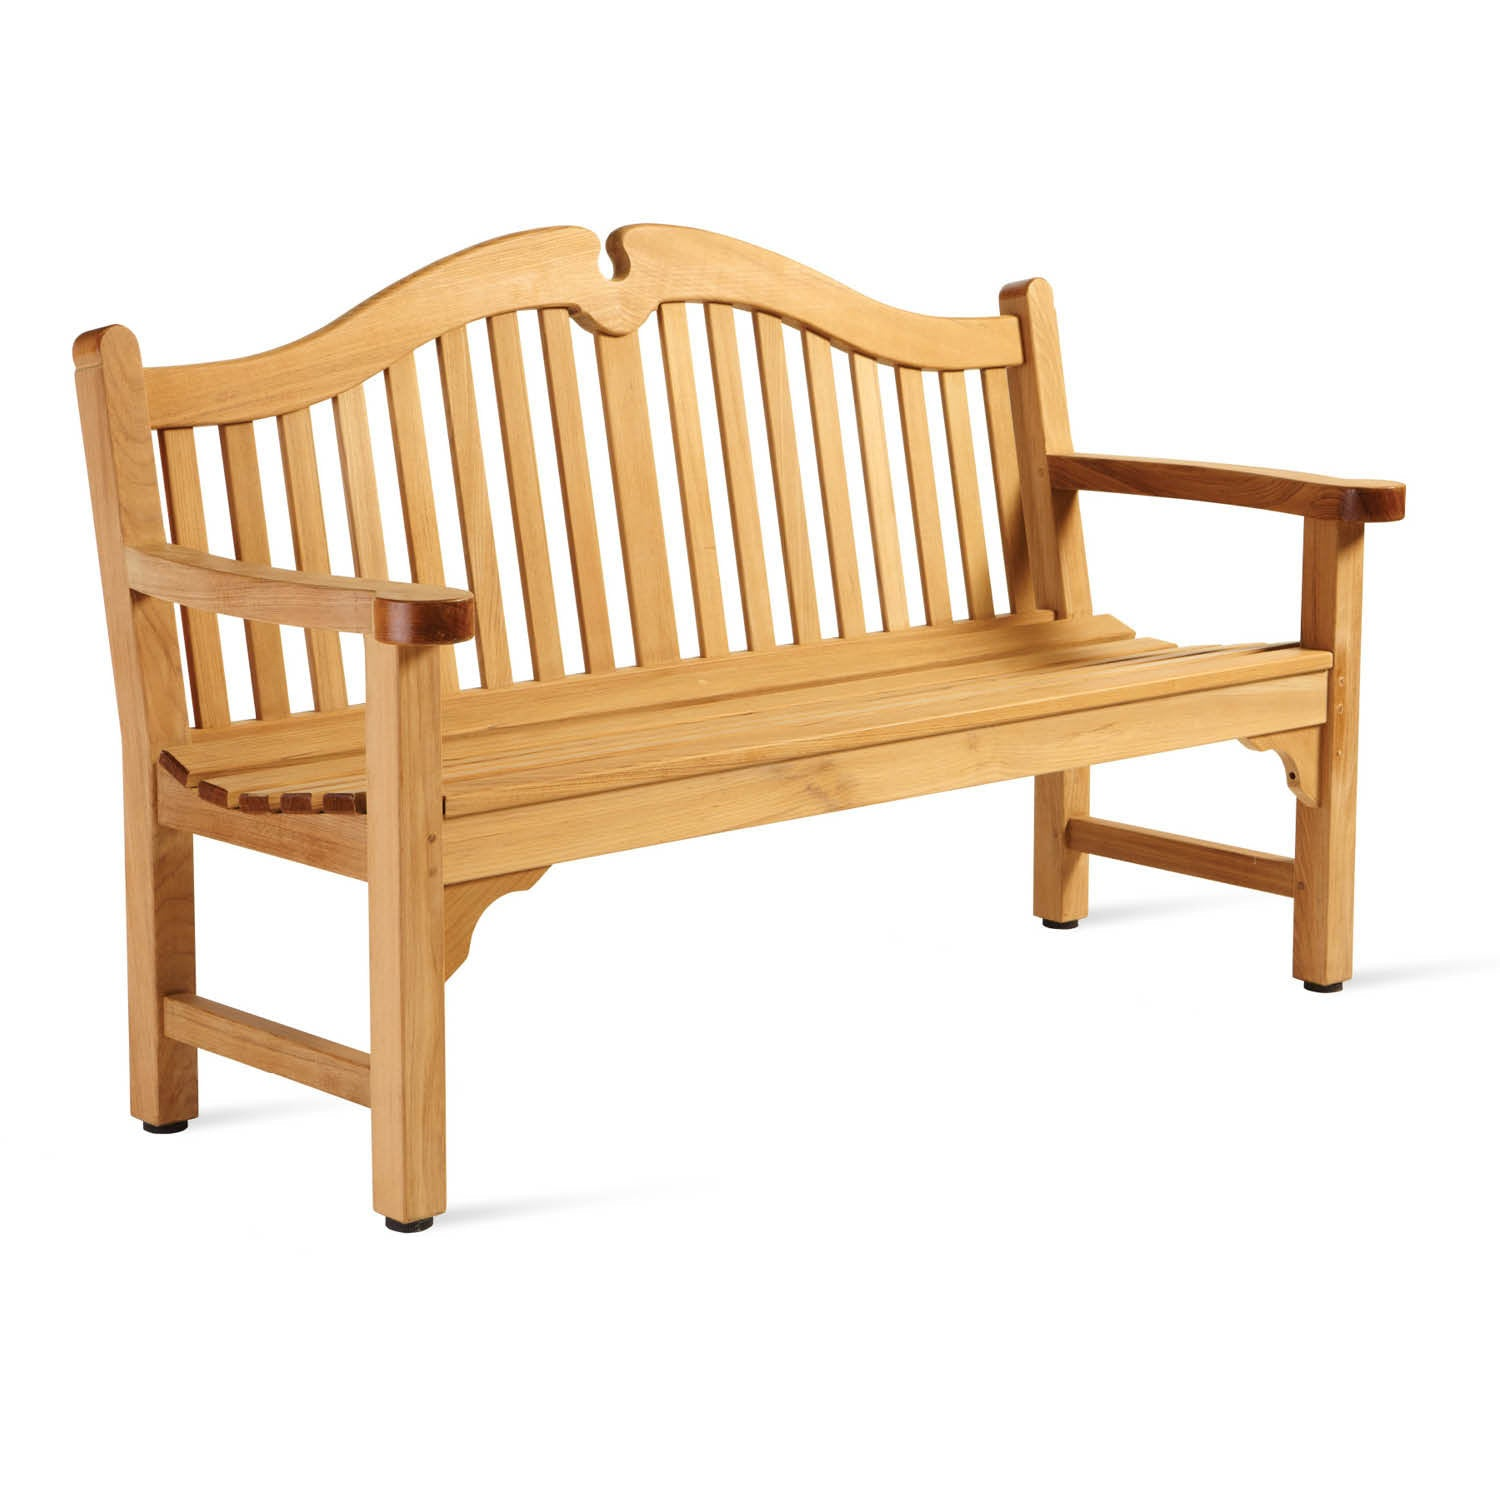 Cotswold Chester Garden Bench